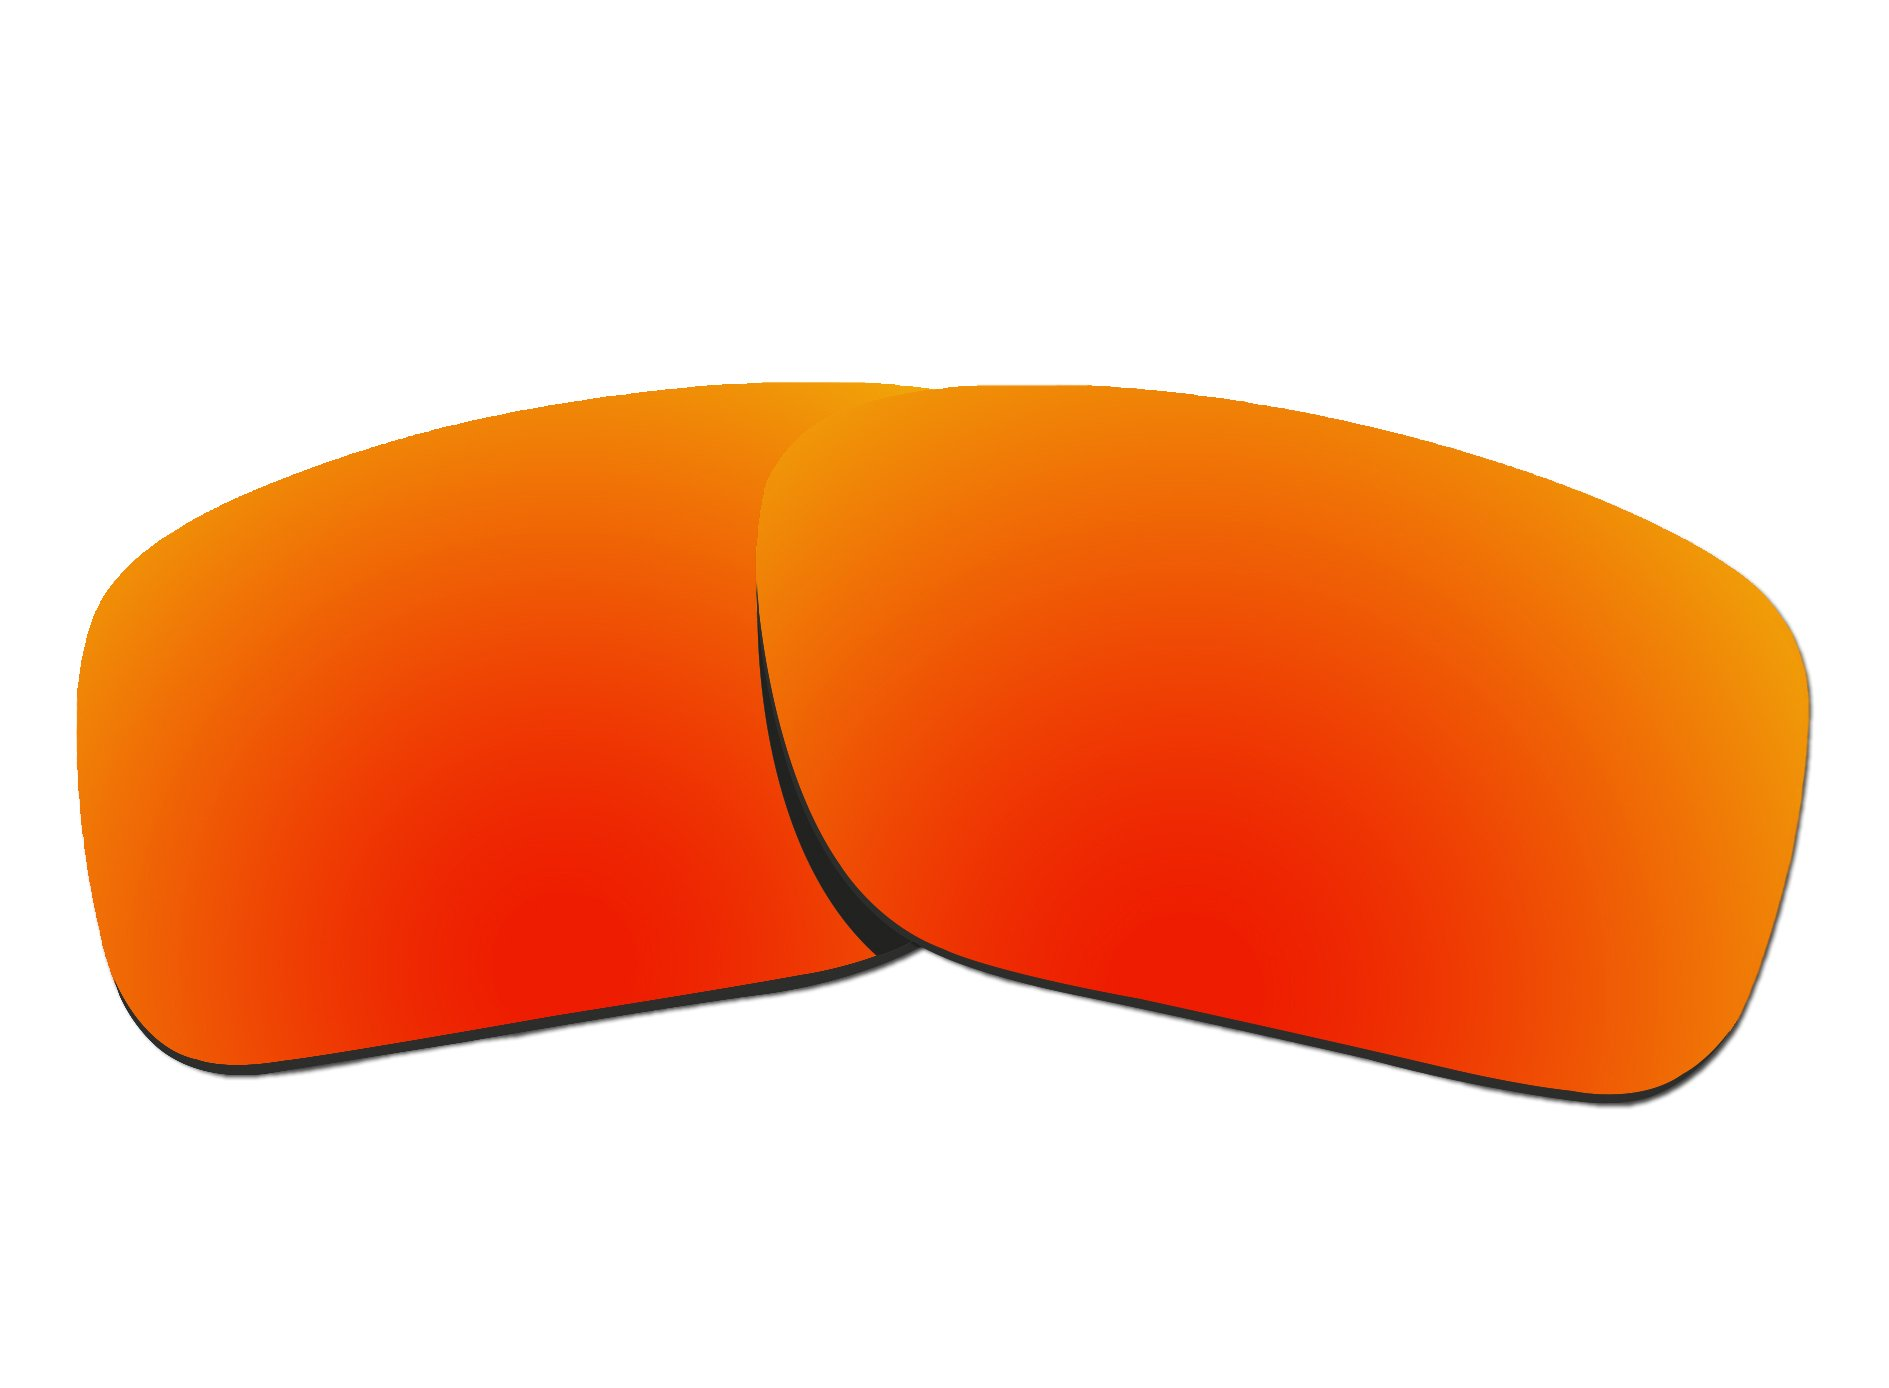 42513de80e Get Quotations · COLOR STAY LENSES 2.0mm Thickness Polarized Replacement  Lenses for Oakley SI Ballistic Det Cord OO9253